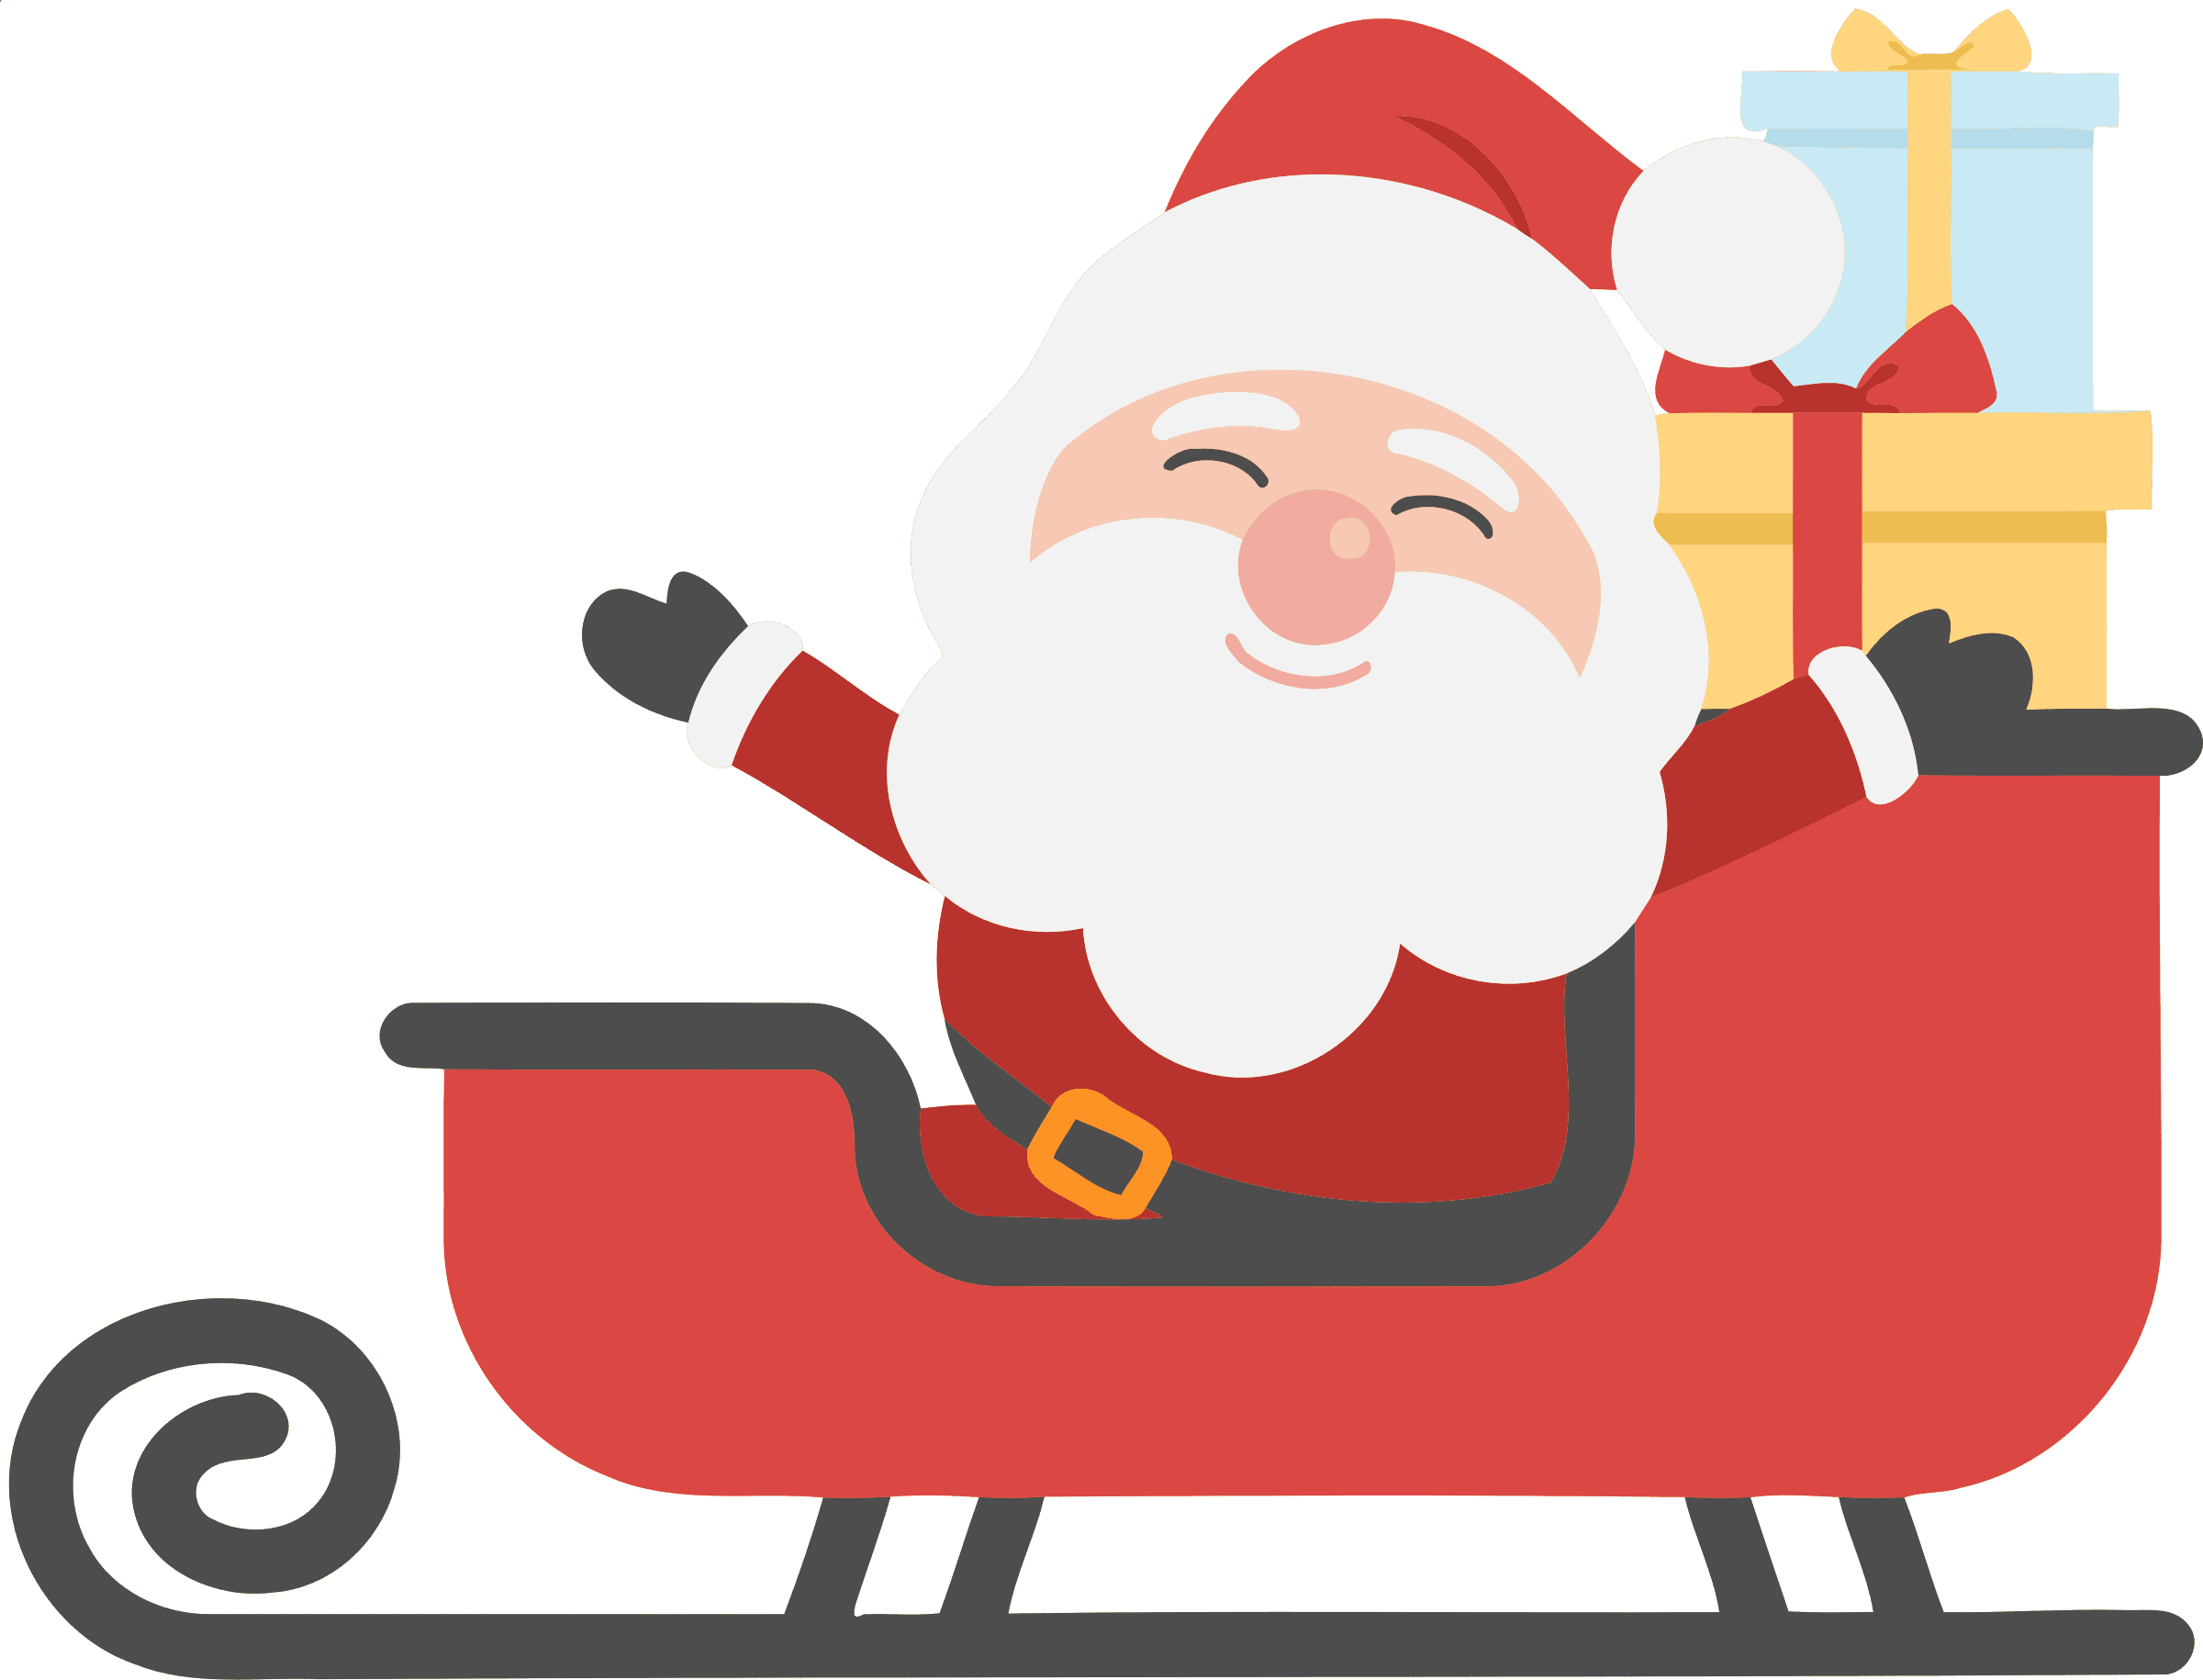 Free Santa Claus Clip Art for Christmas Santa crafts